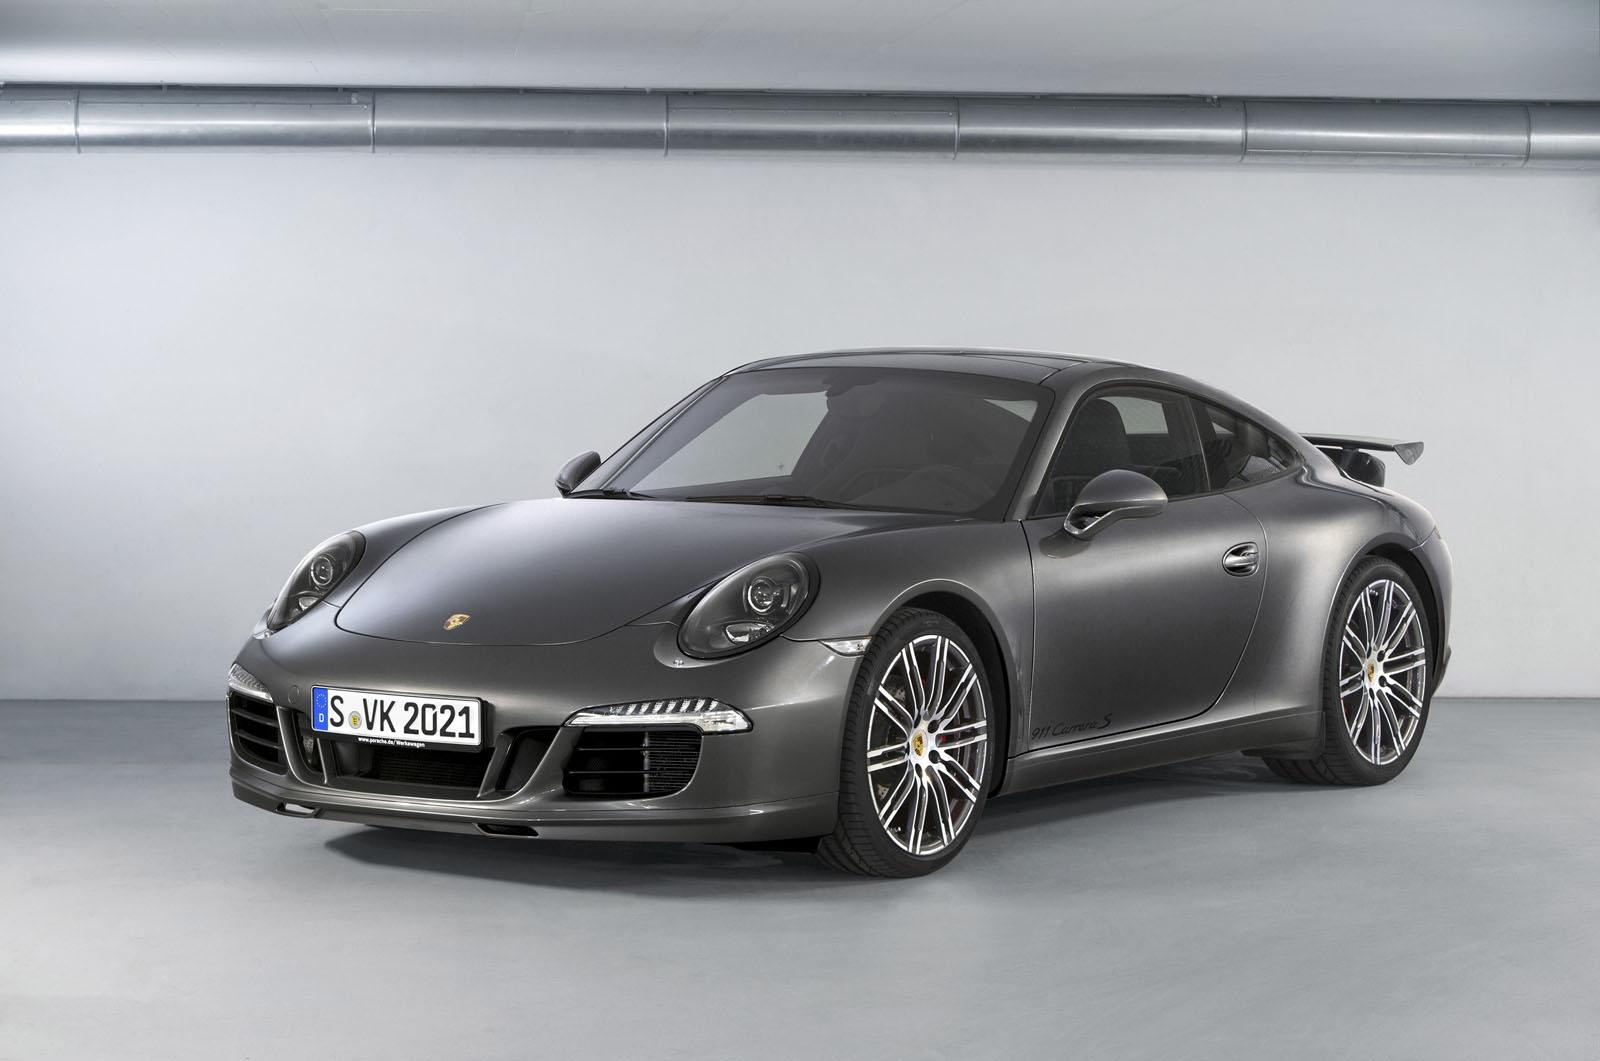 2015 - Porsche Tequipment Celebrates 30 Years